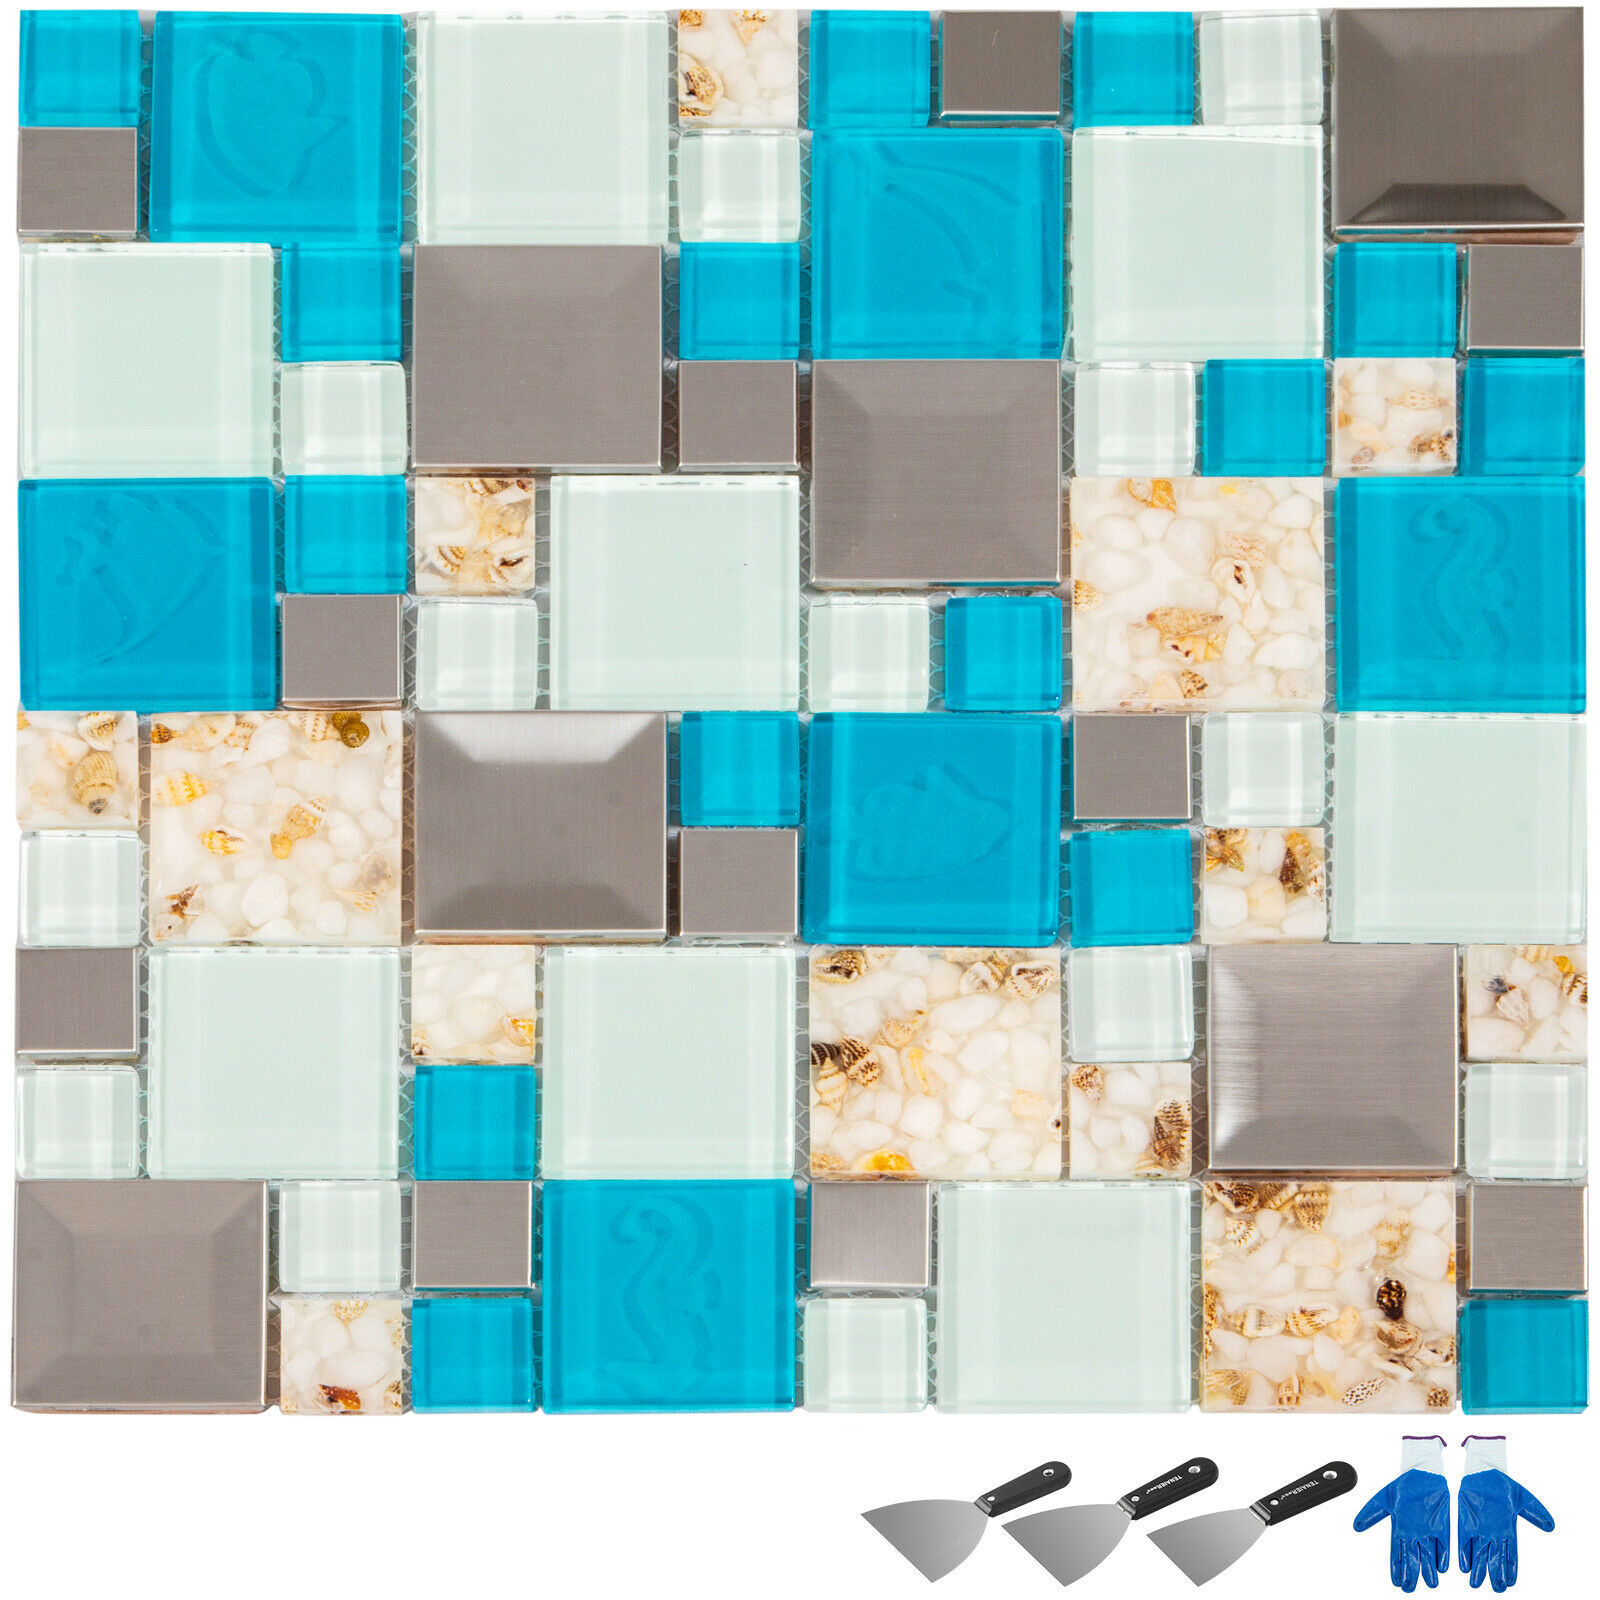 6 Sheets Beach Style Glass Tile For Kitchen Backsplash Bath Wall Seashell Inside 857427005237 Ebay